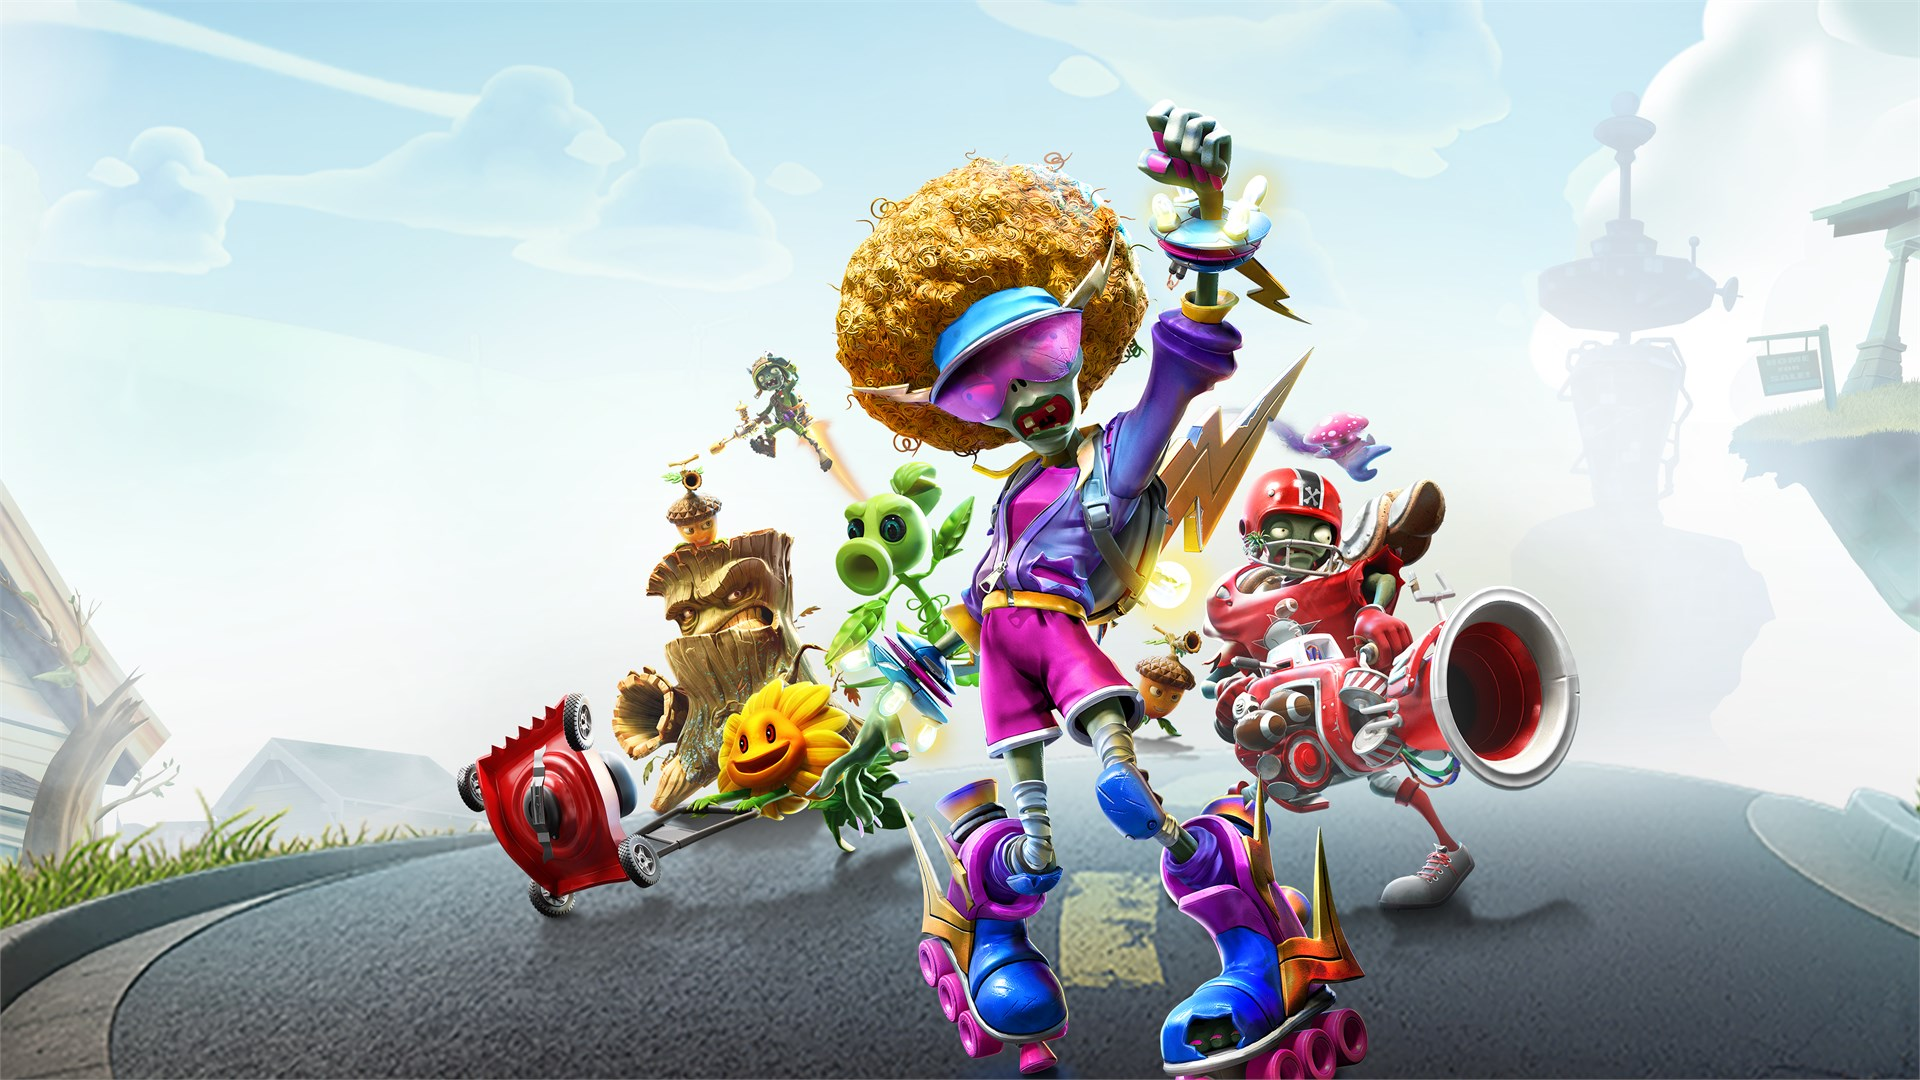 Plants vs Zombies: Battle for Neighborville sees a mad